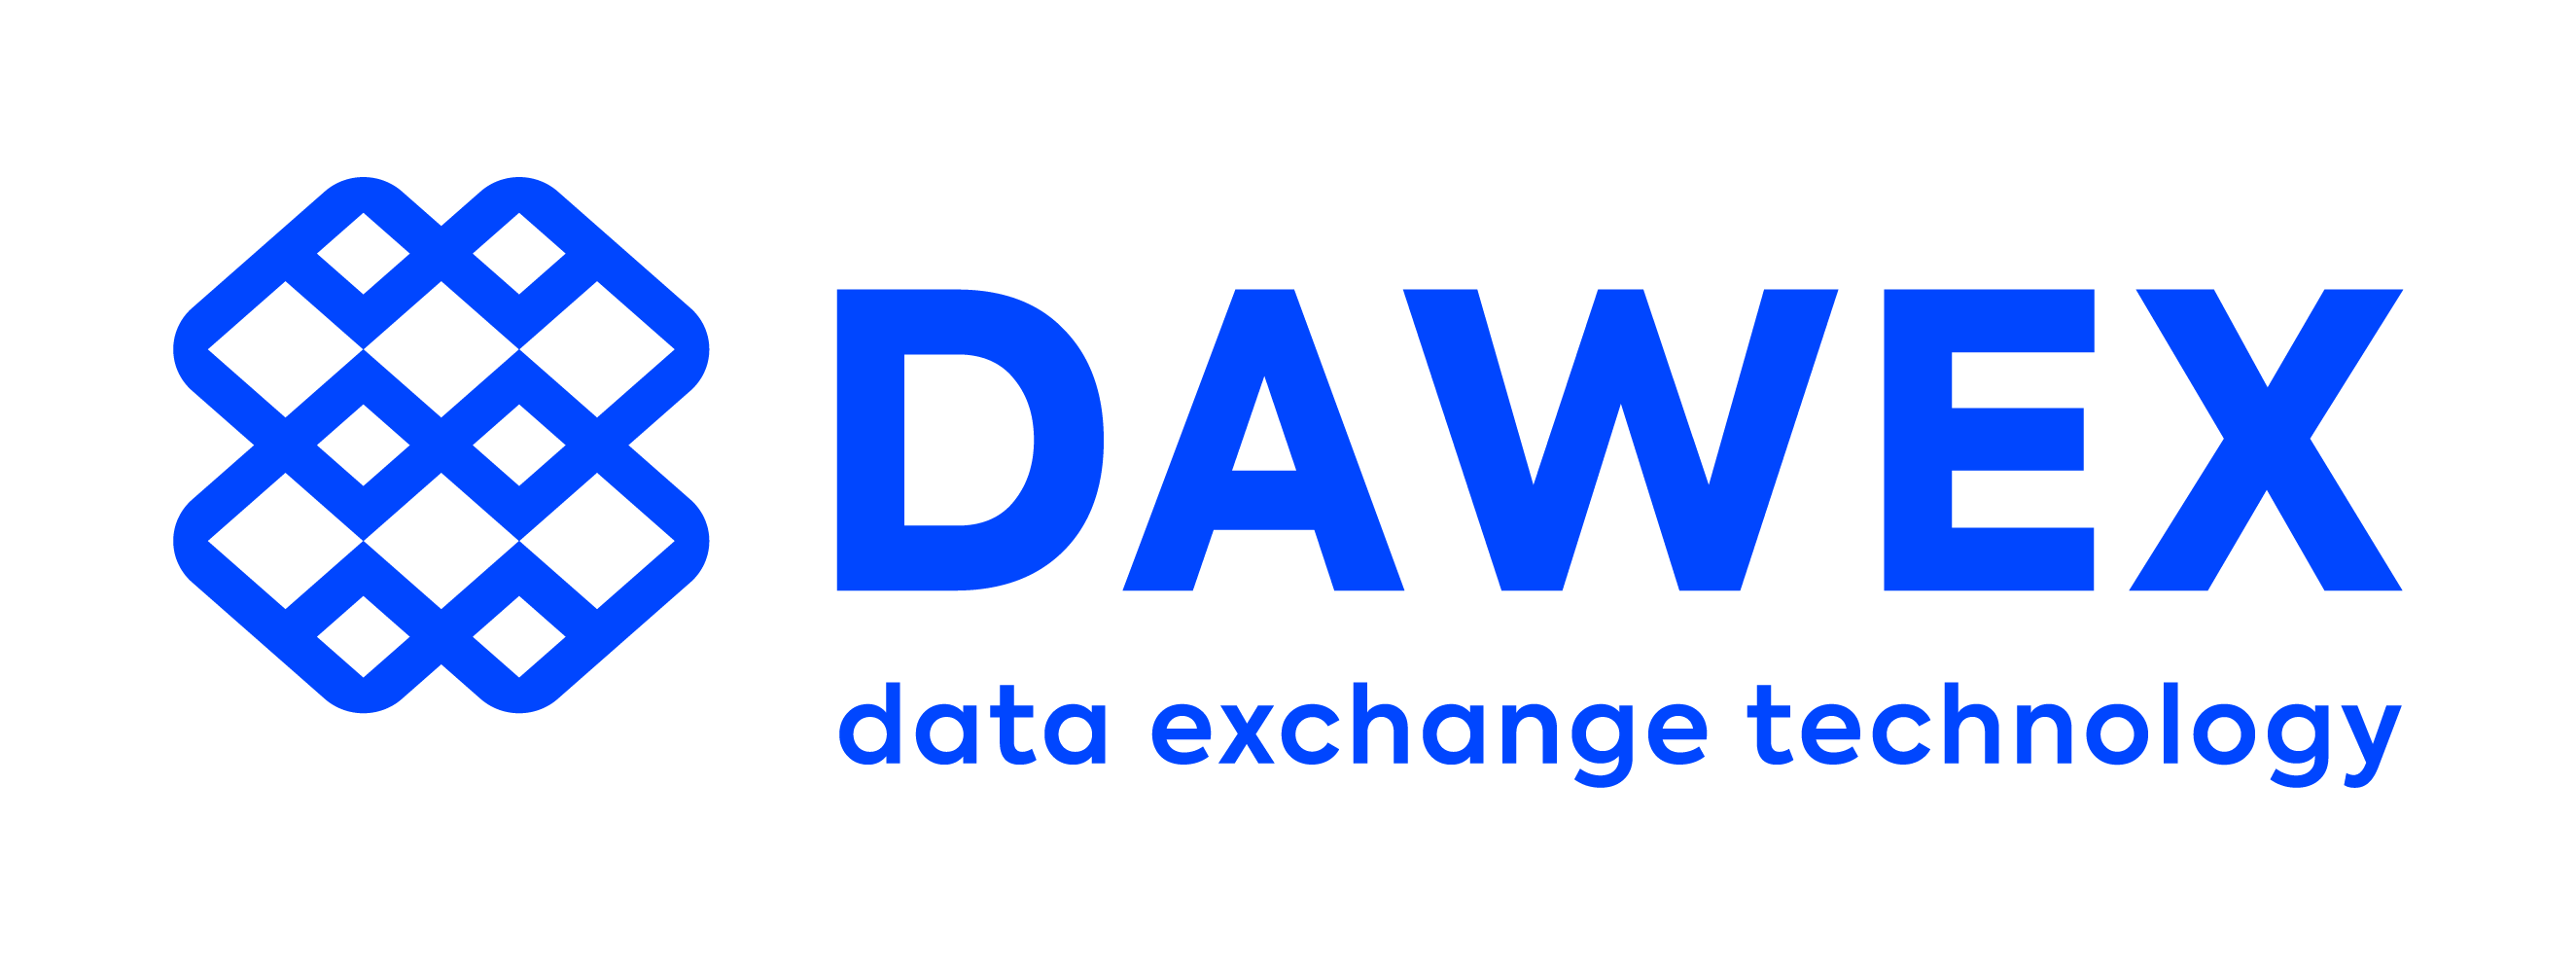 dawex logo baseline data exchange technology